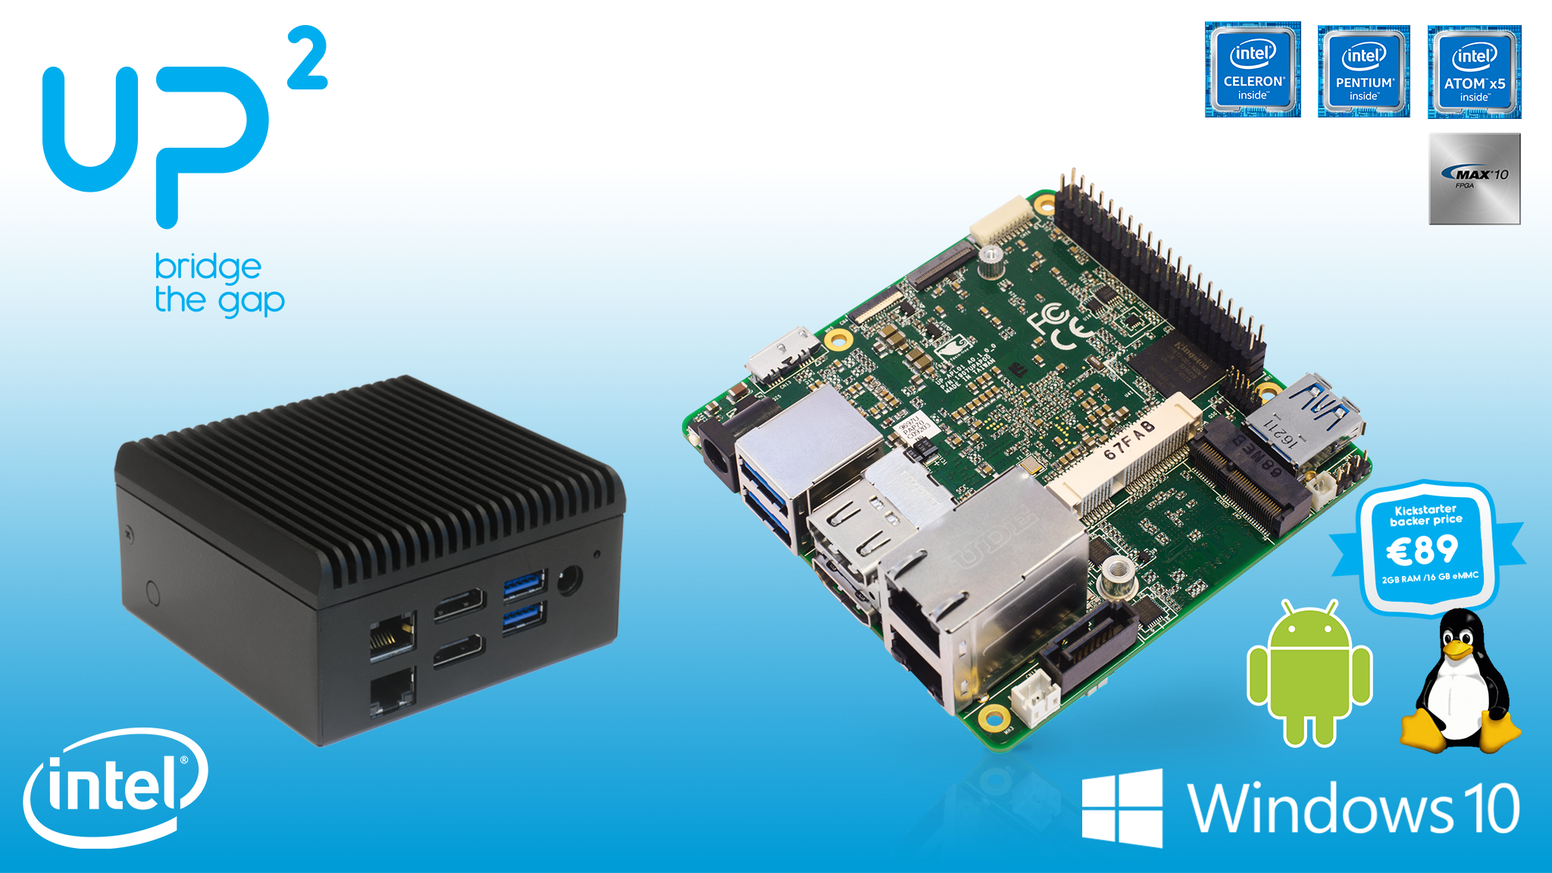 UP² (UP Squared) the most powerful maker board ever! Now it is also available as a fanless PC, powered by Intel Apollo Lake CPU